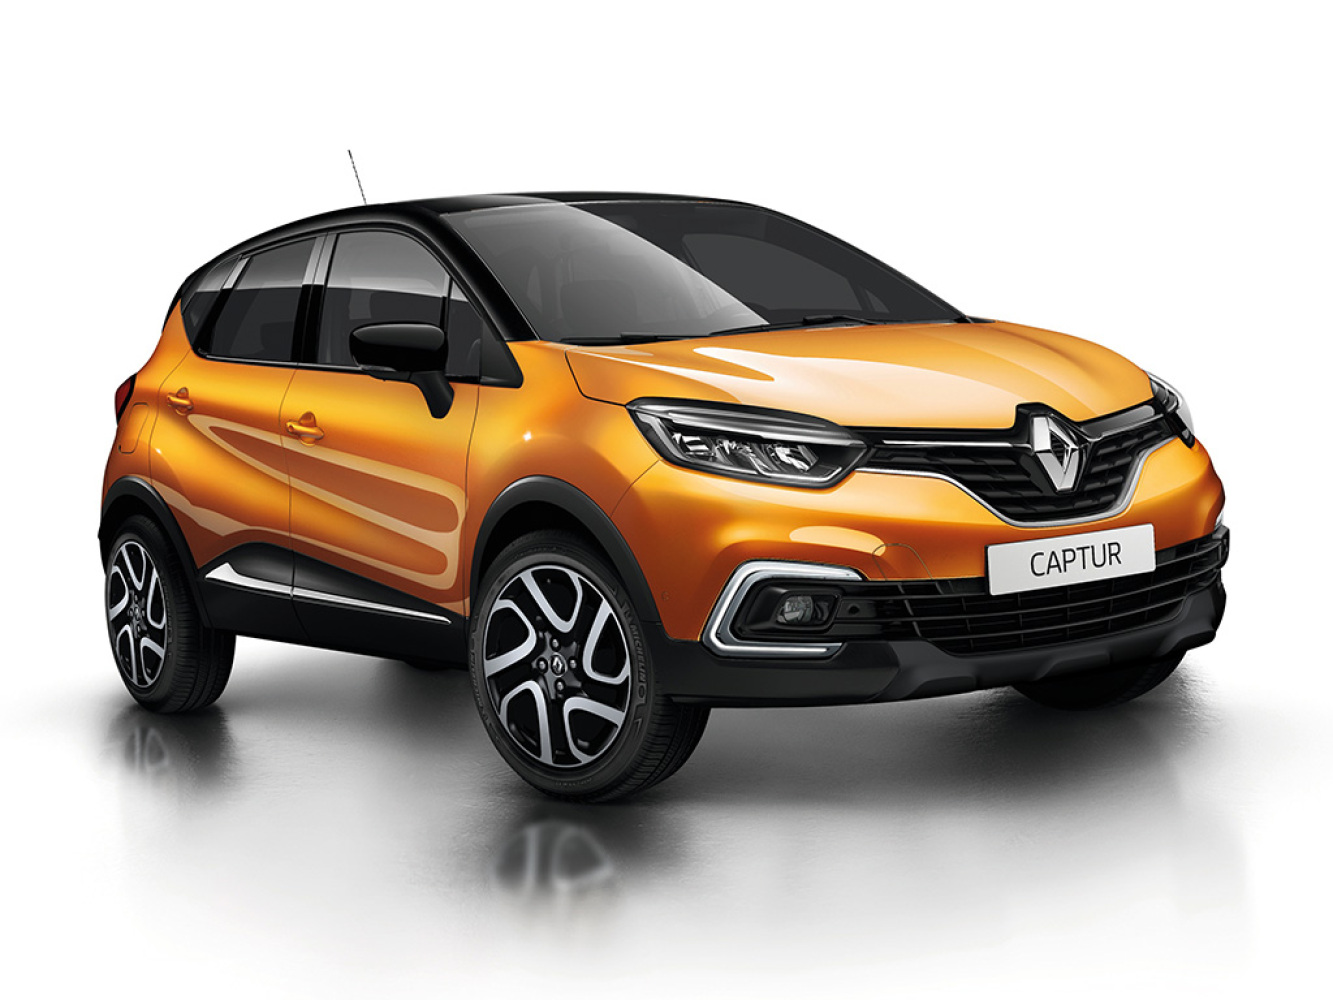 Mansfield Uk Auto Electrical Wiring Diagram Wire 50cc Panterra Retro New Renault Captur 0 9 Tce 90 Iconic 5dr Petrol Hatchback